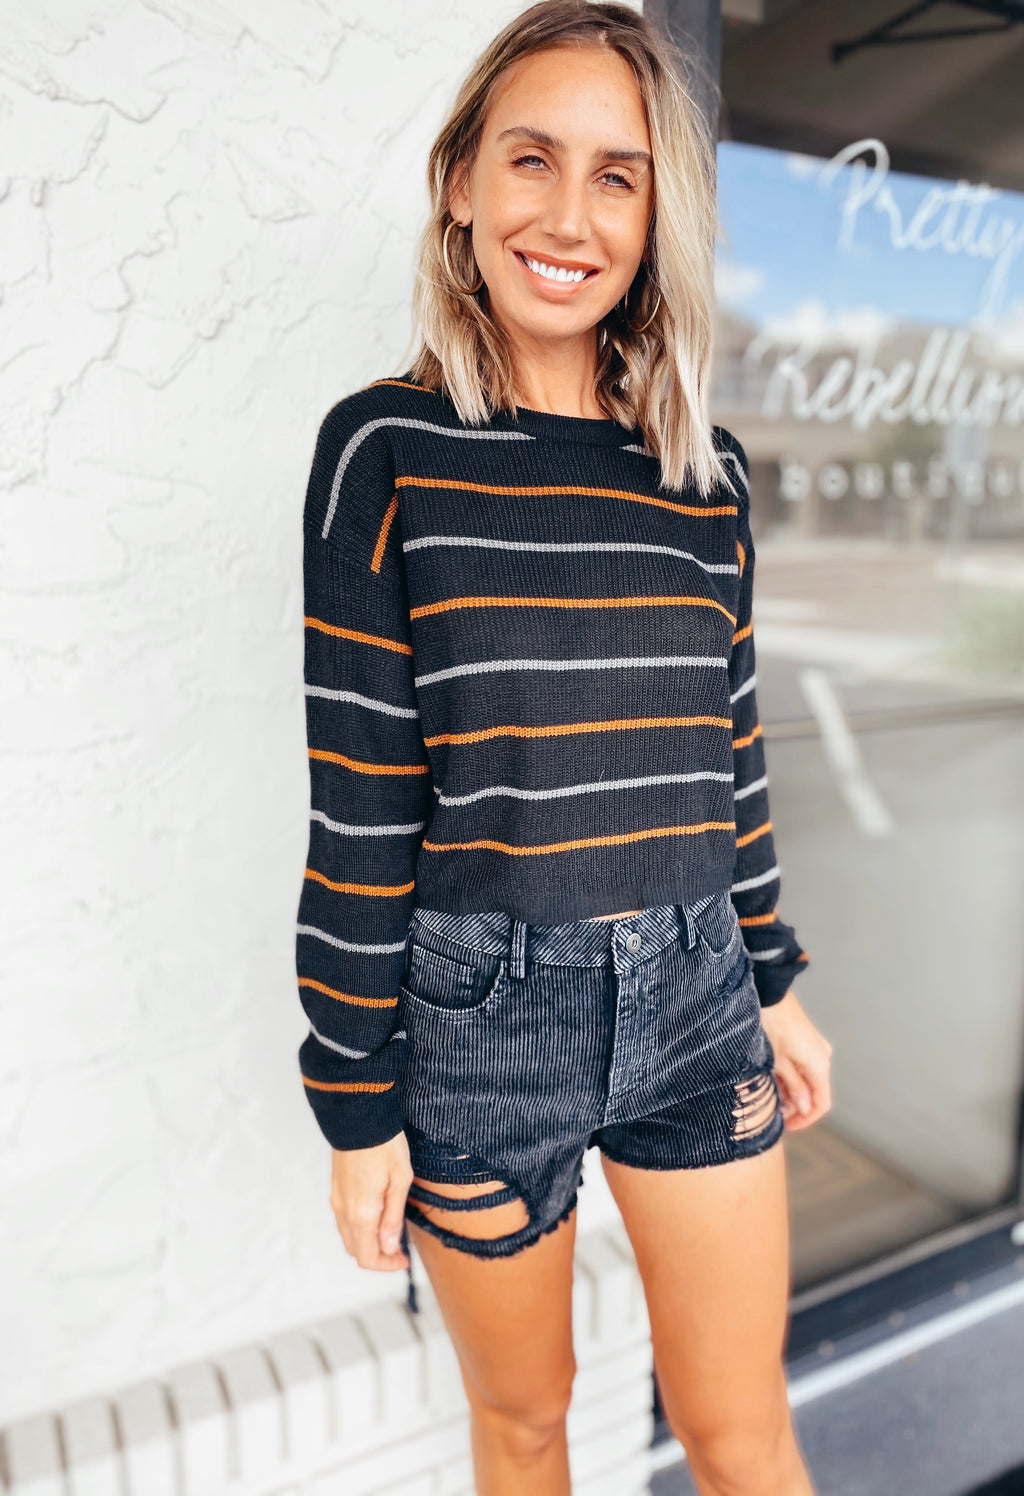 The Salem Lightweight Sweater